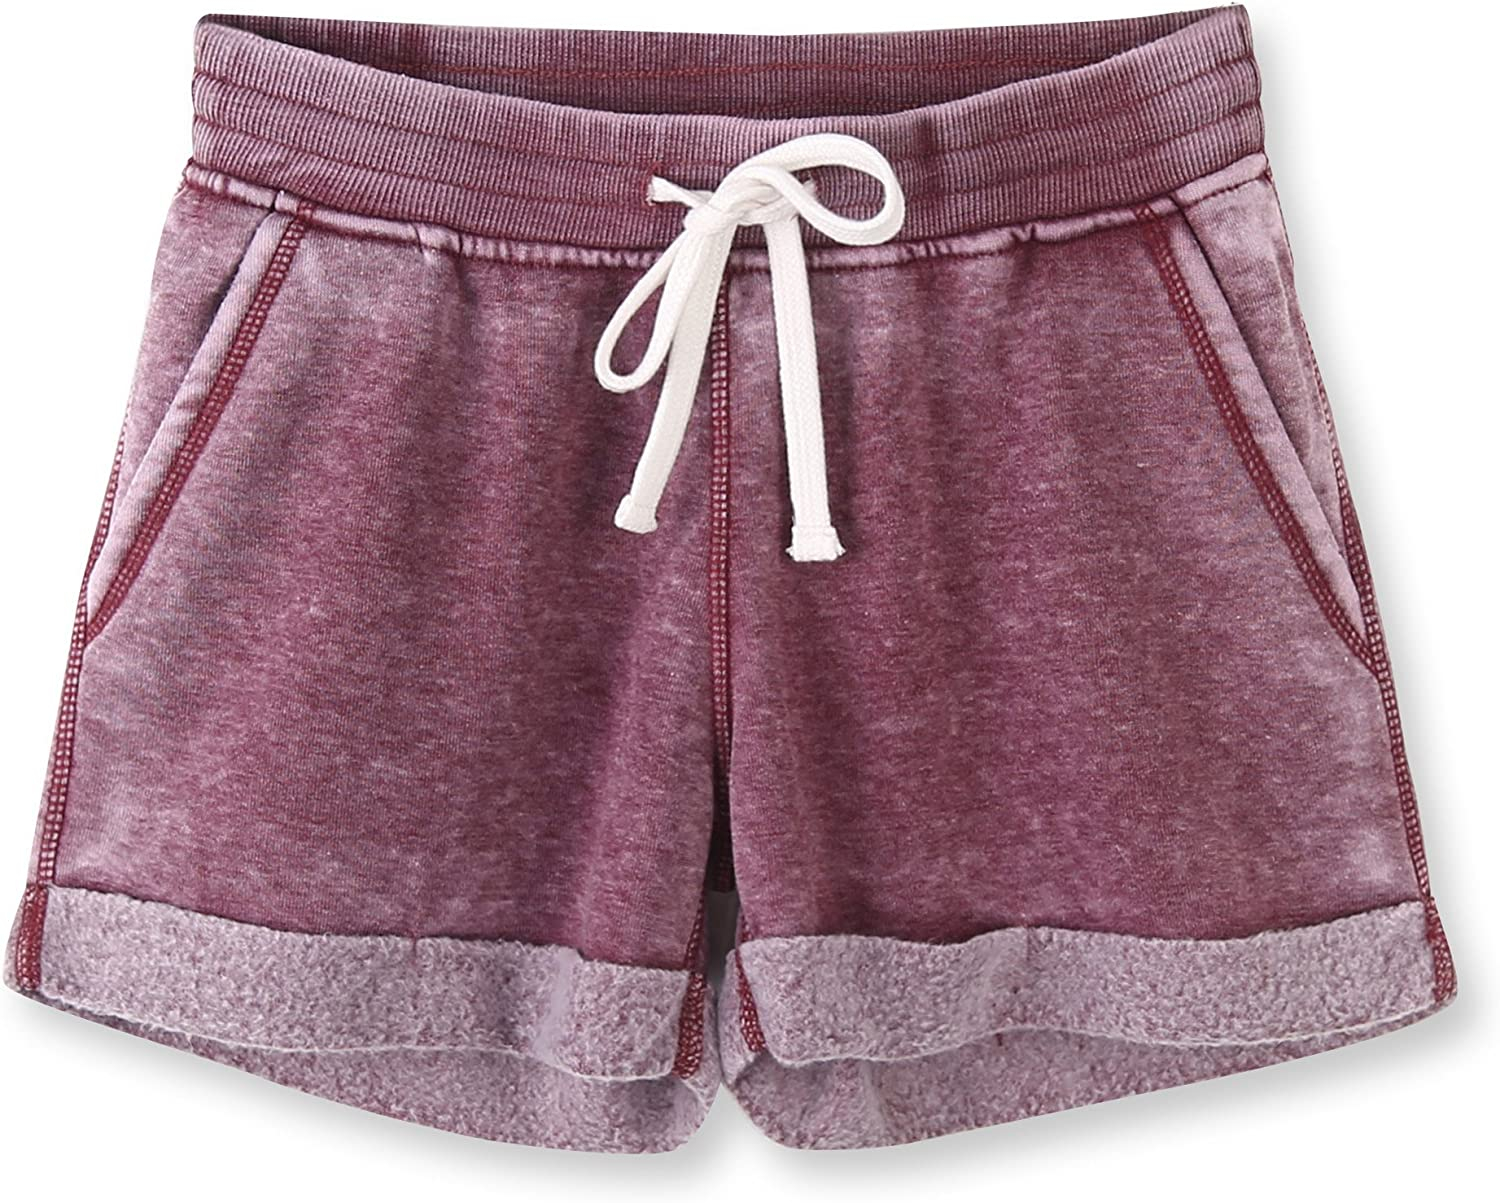 Vetemin Women's Cotton Stretch Activewear Lounge Shorts